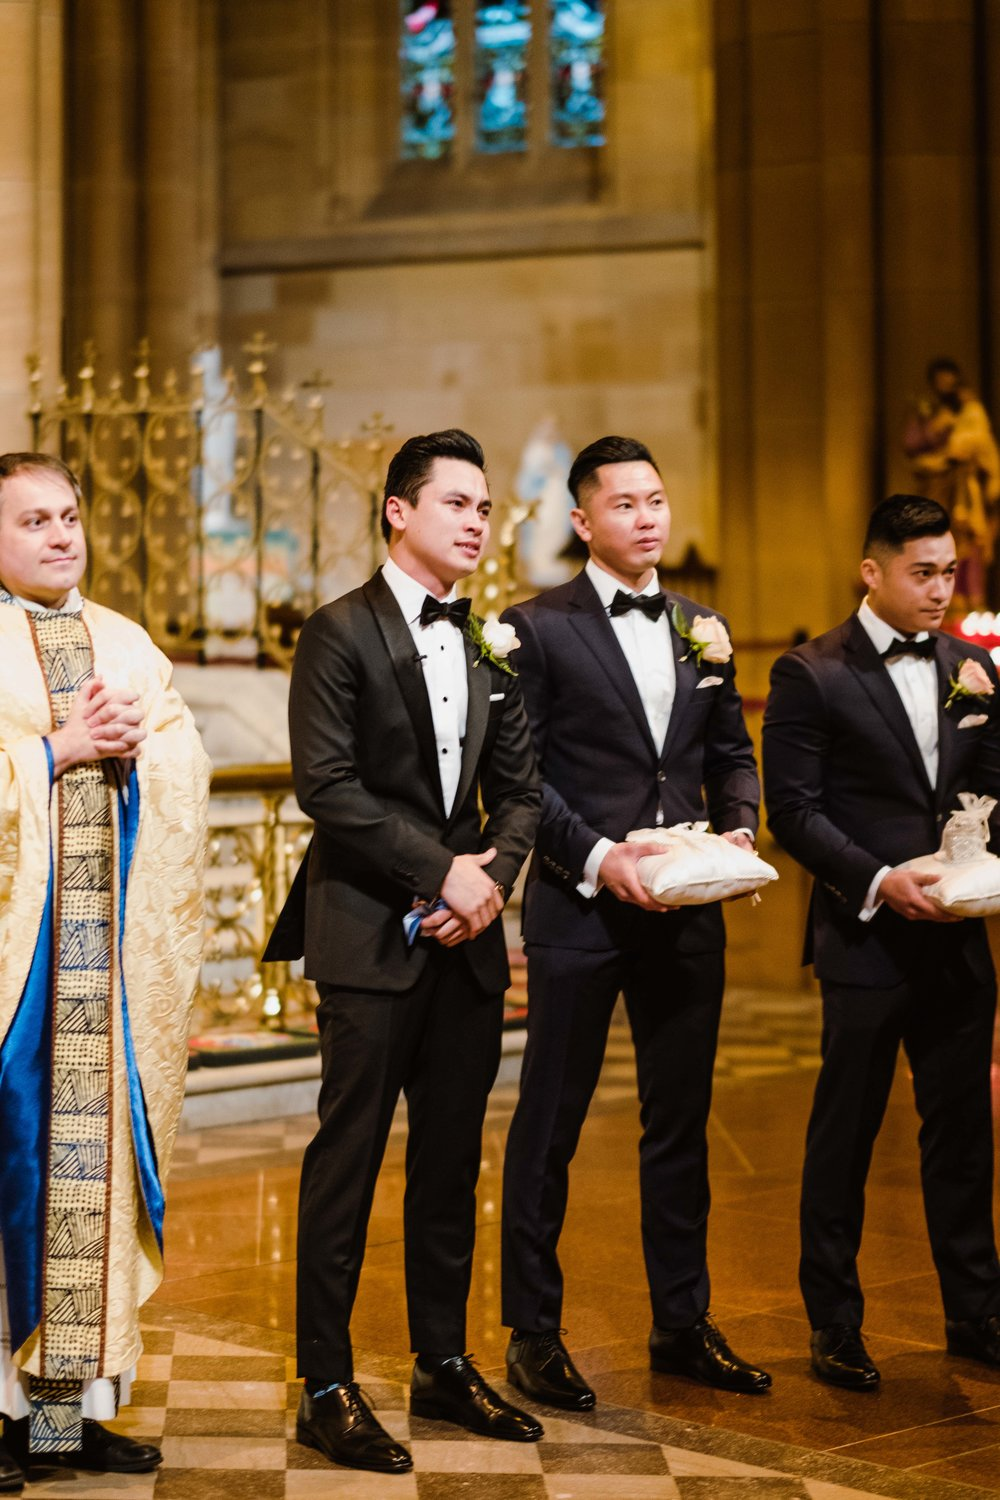 Maria and Gerald Sydney wedding by Milton Gan Photography 12.jpg